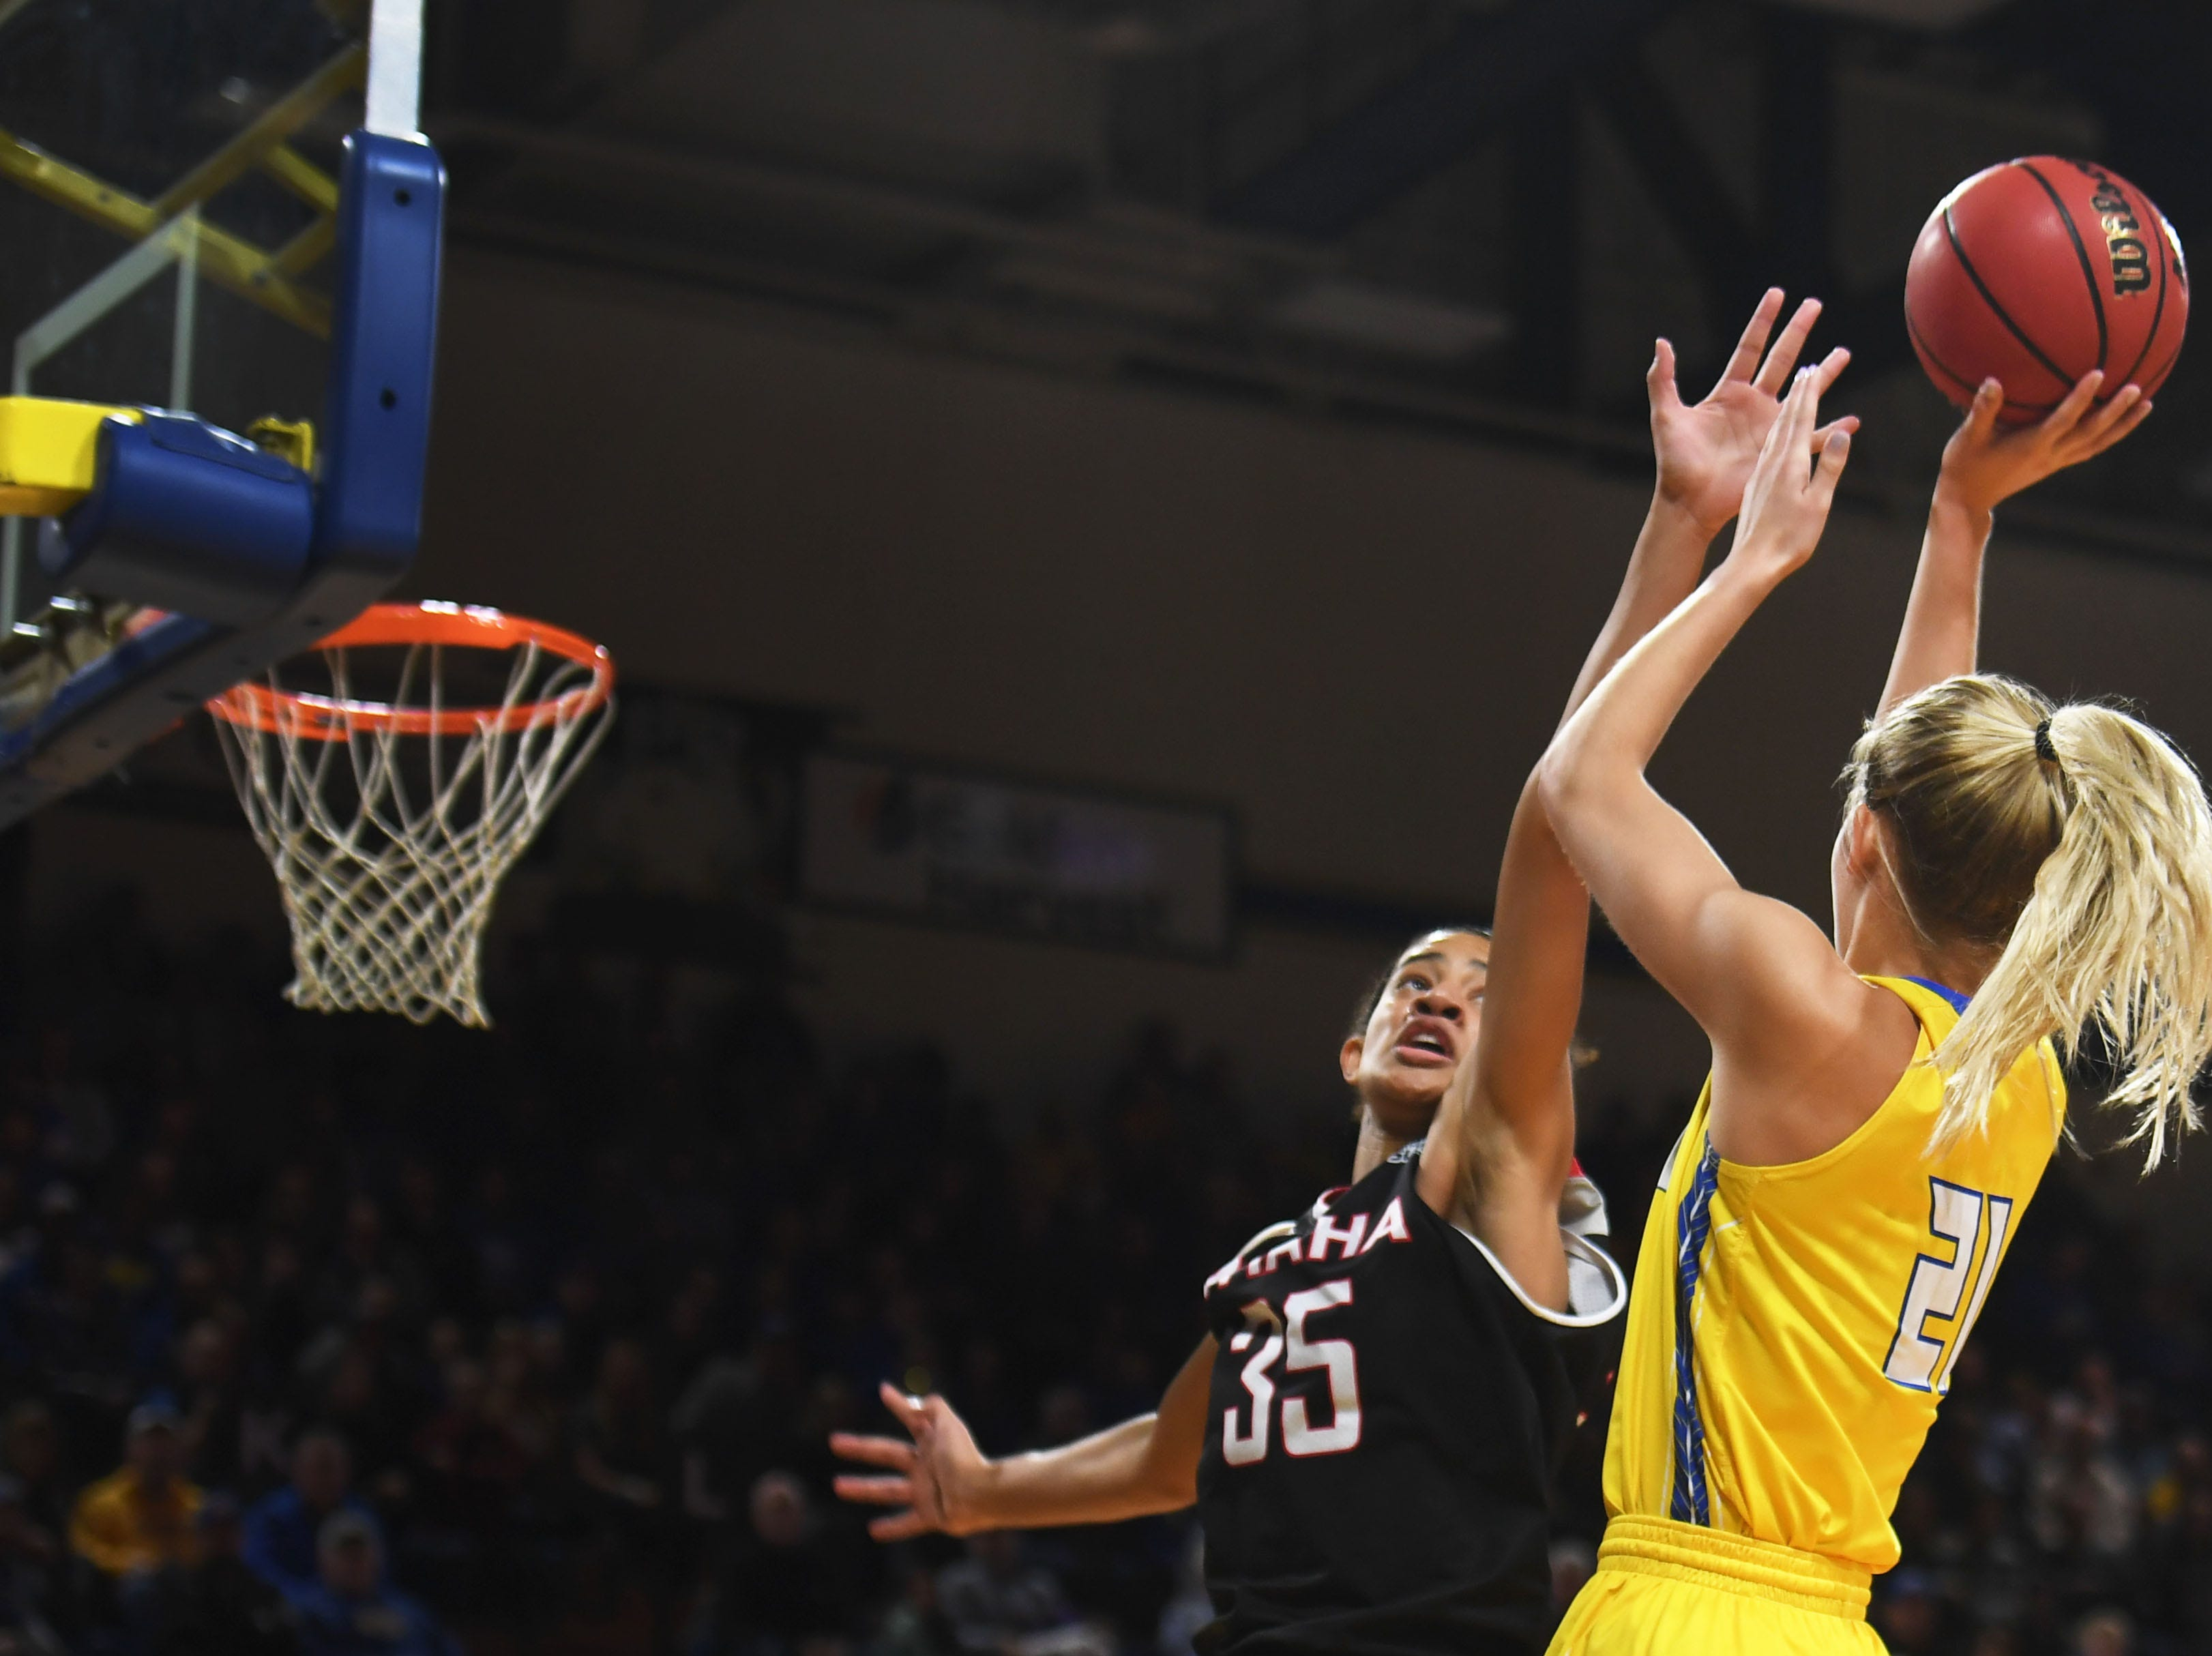 Omaha's Mariah Murdie attempts to block SDSU's Tylee Irwin during the game Saturday, Jan. 26, at Frost Arena in Brookings.